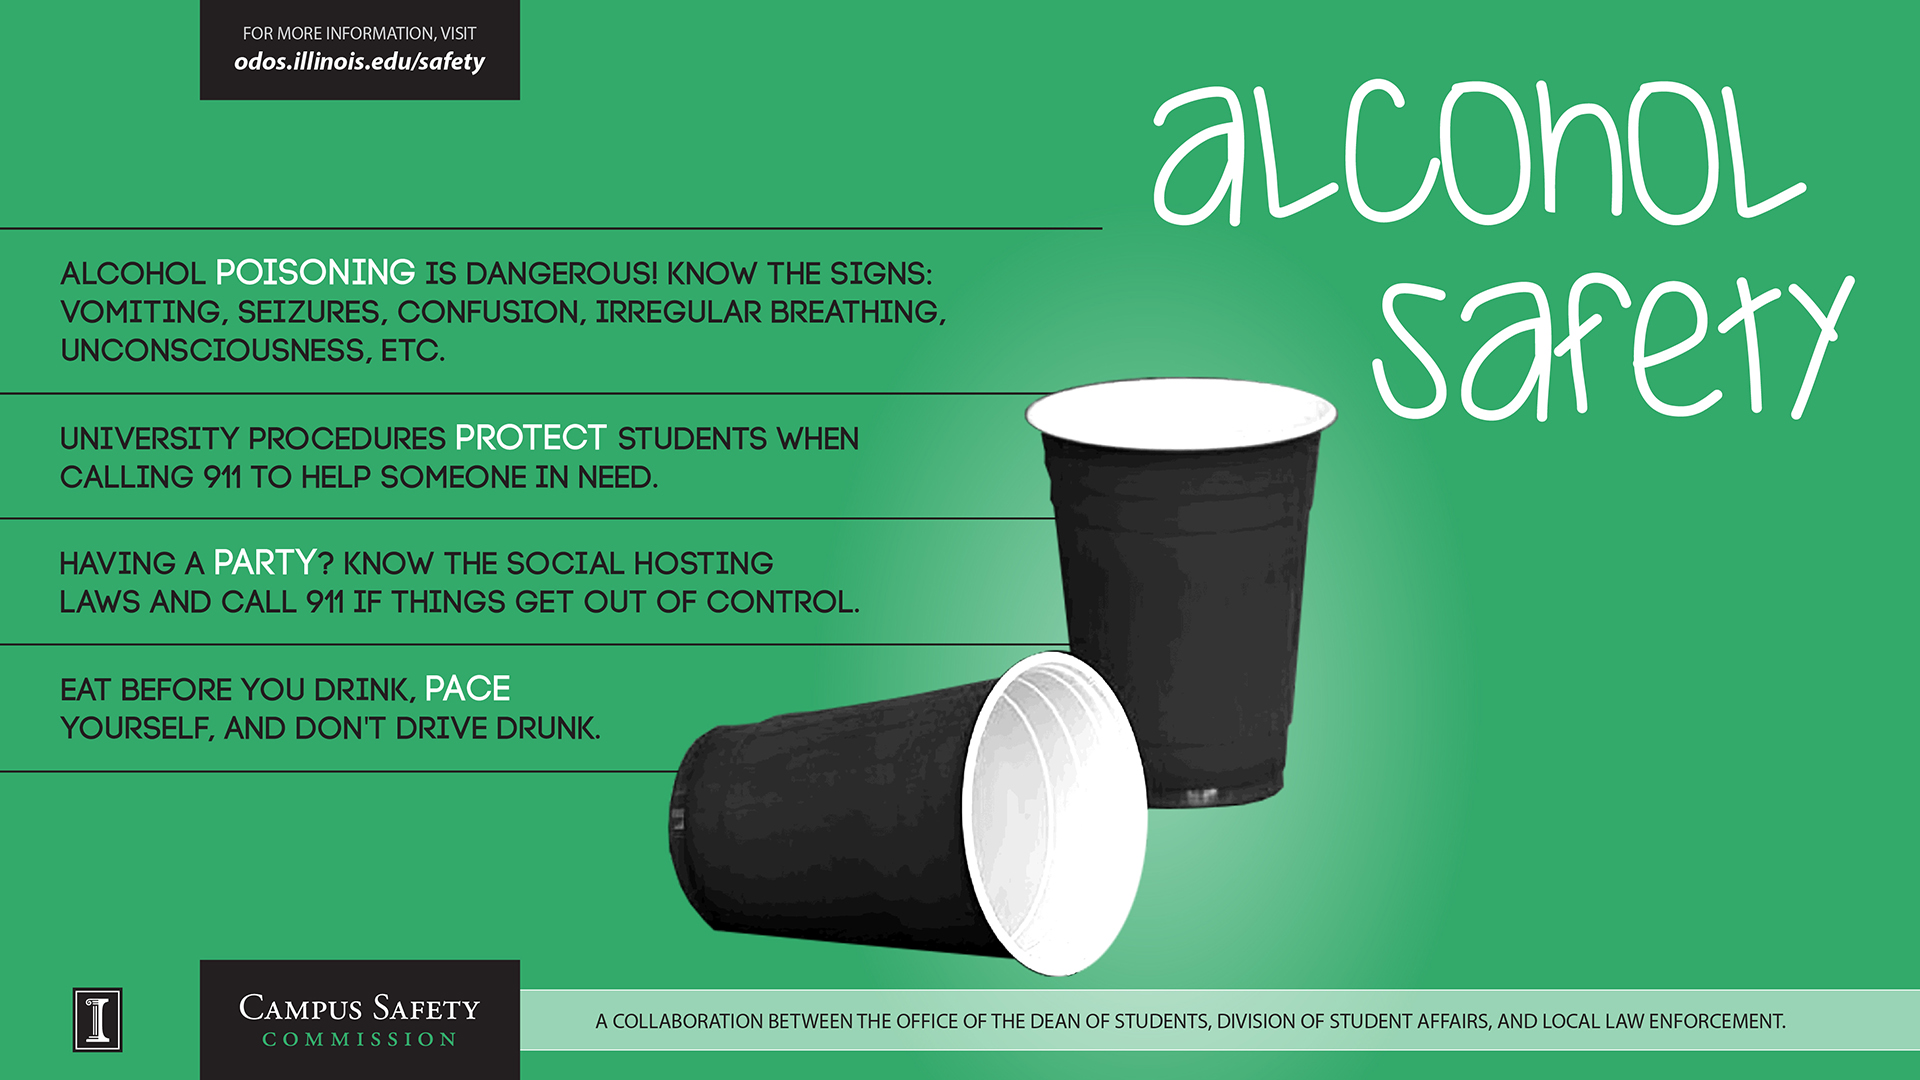 Medical Alcohol Safety Reminds Illinois Uipd Students Amnesty Of